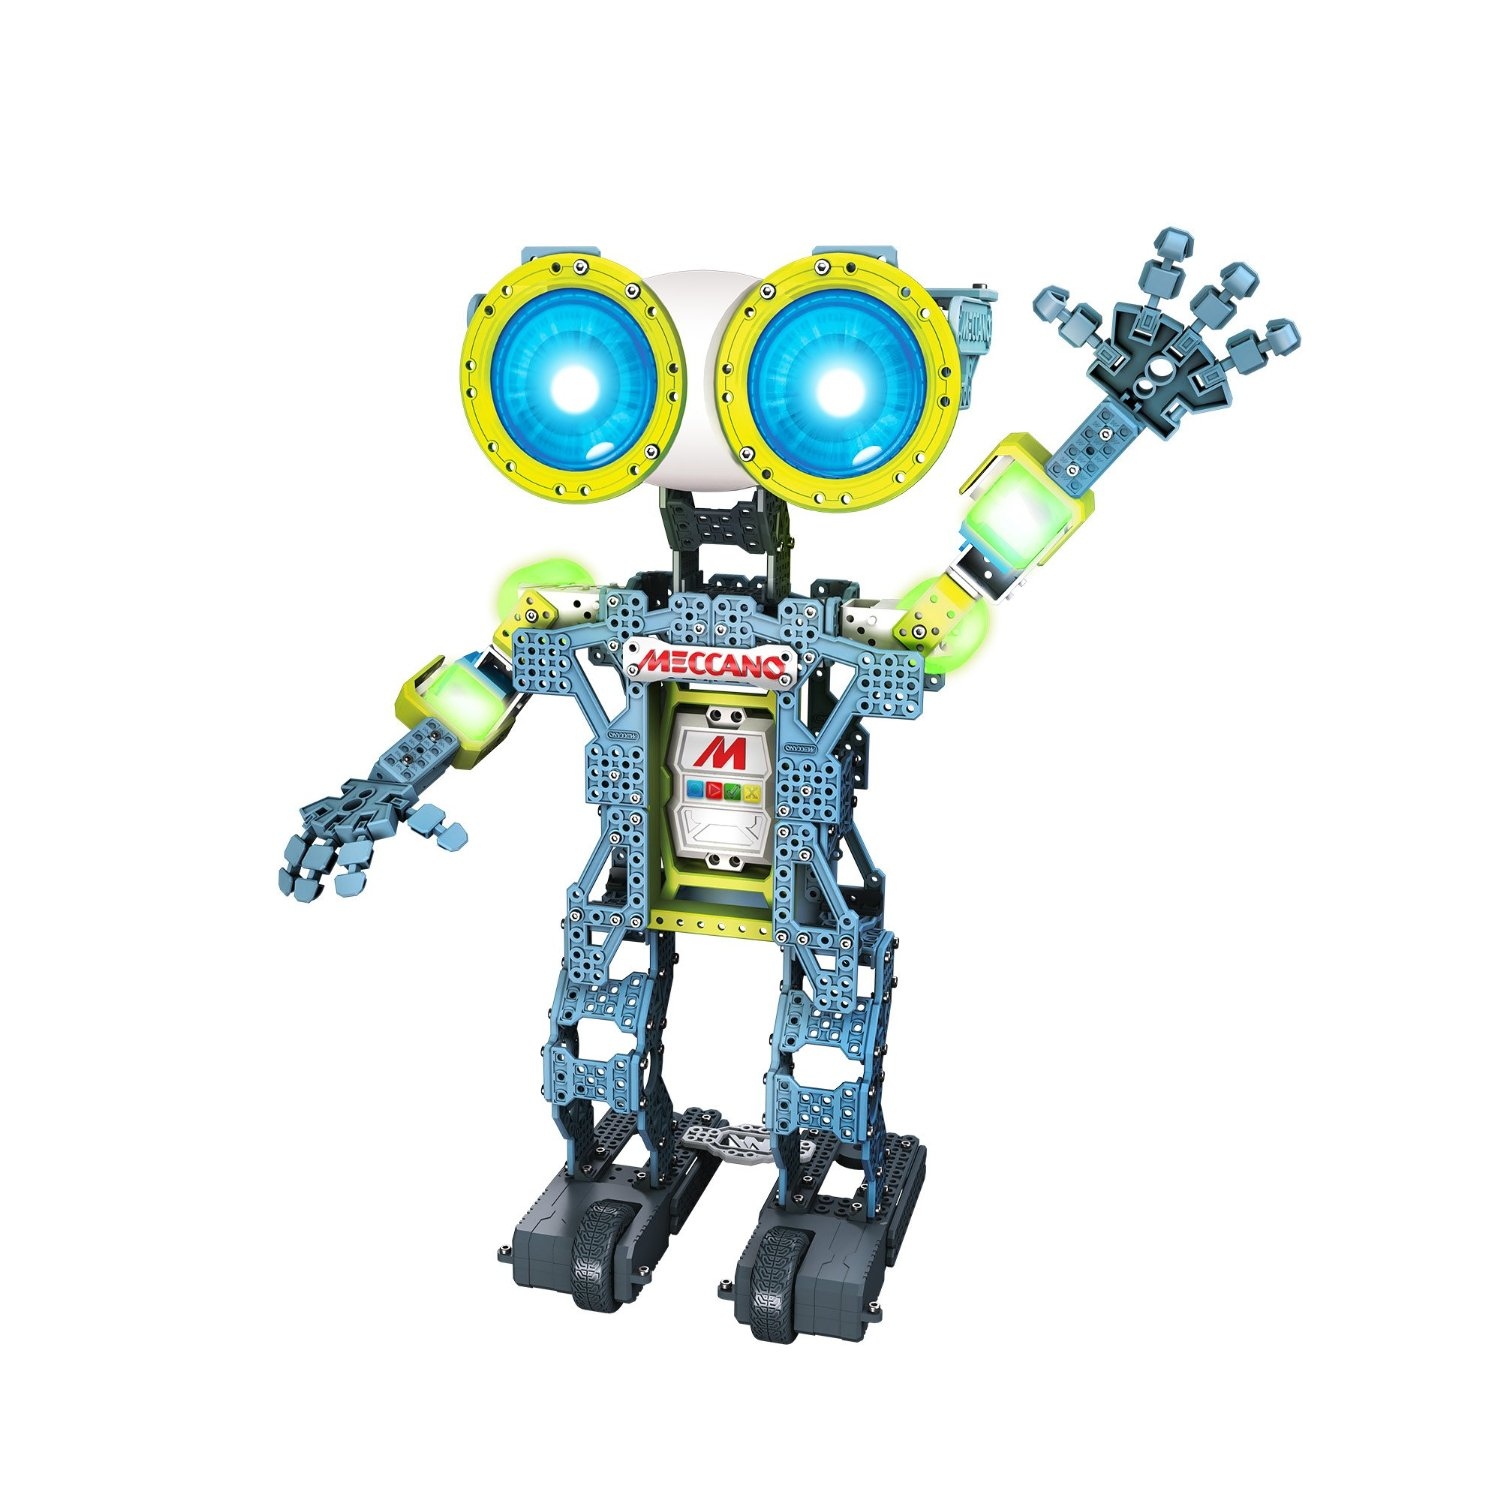 Best Robot Kits for Adults Tutorial45